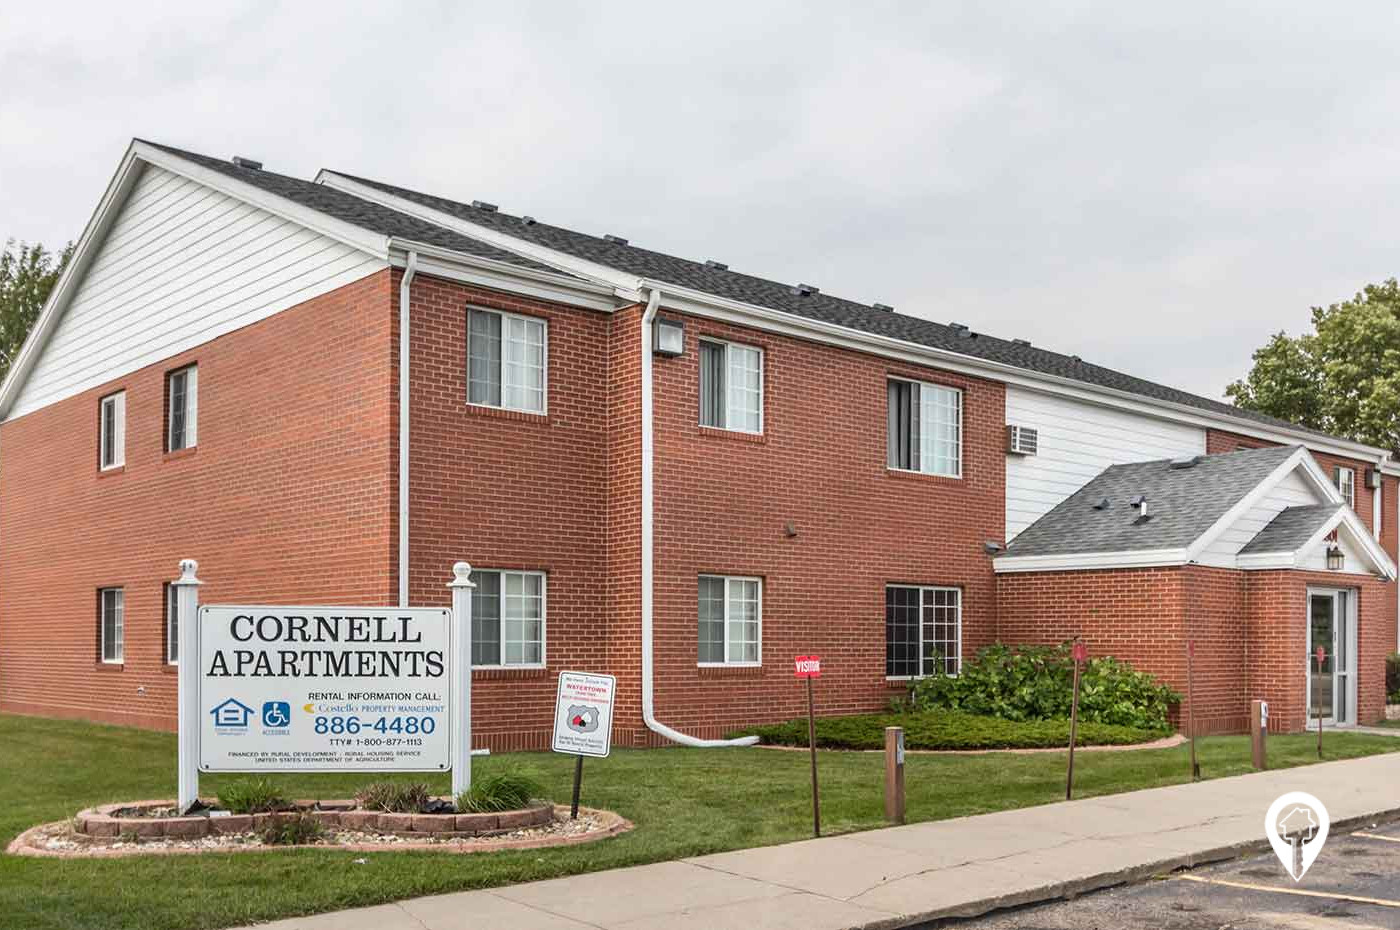 Cornell II Apartments